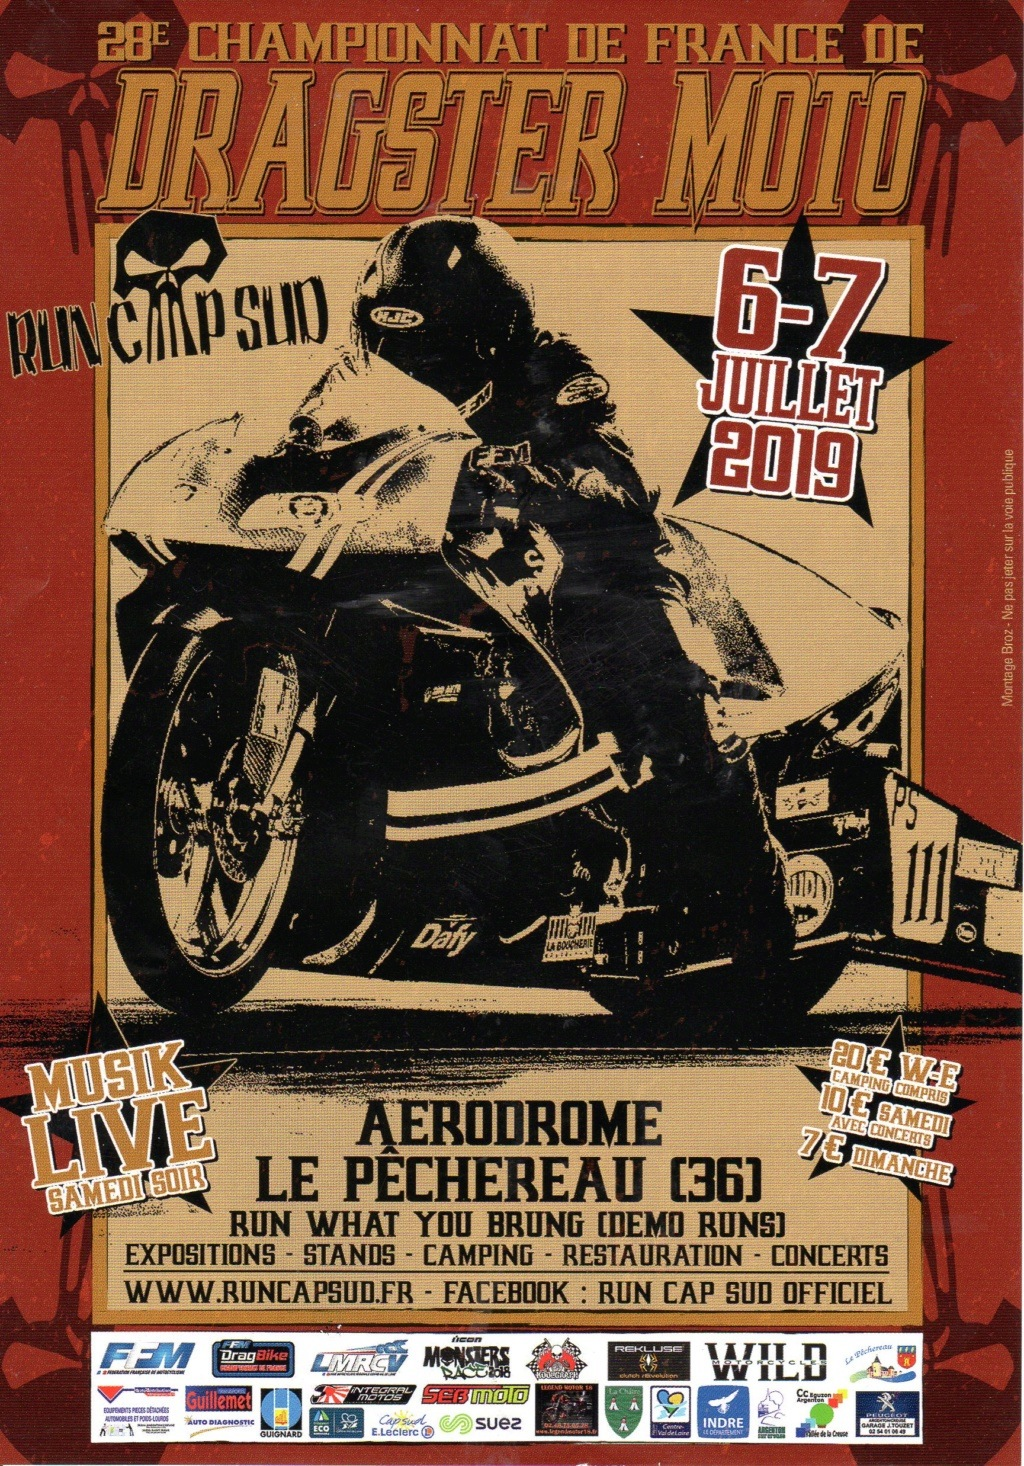 DRAGSTER saison 2019   - Page 3 101310